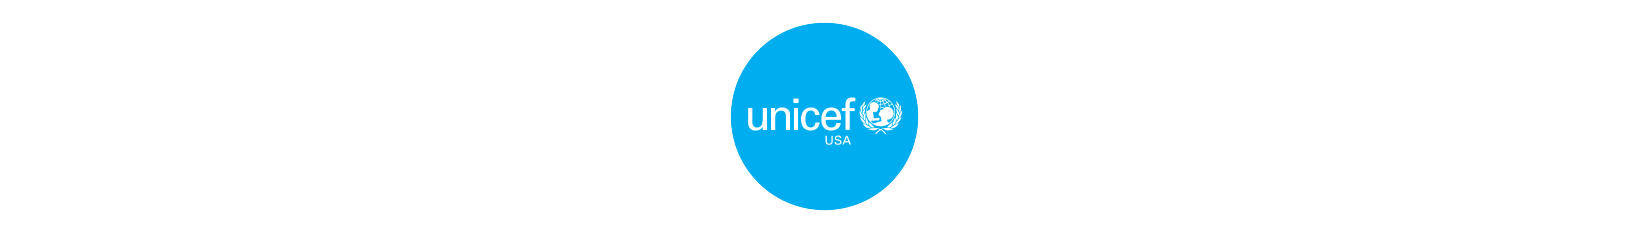 UNICEF for quotes.png